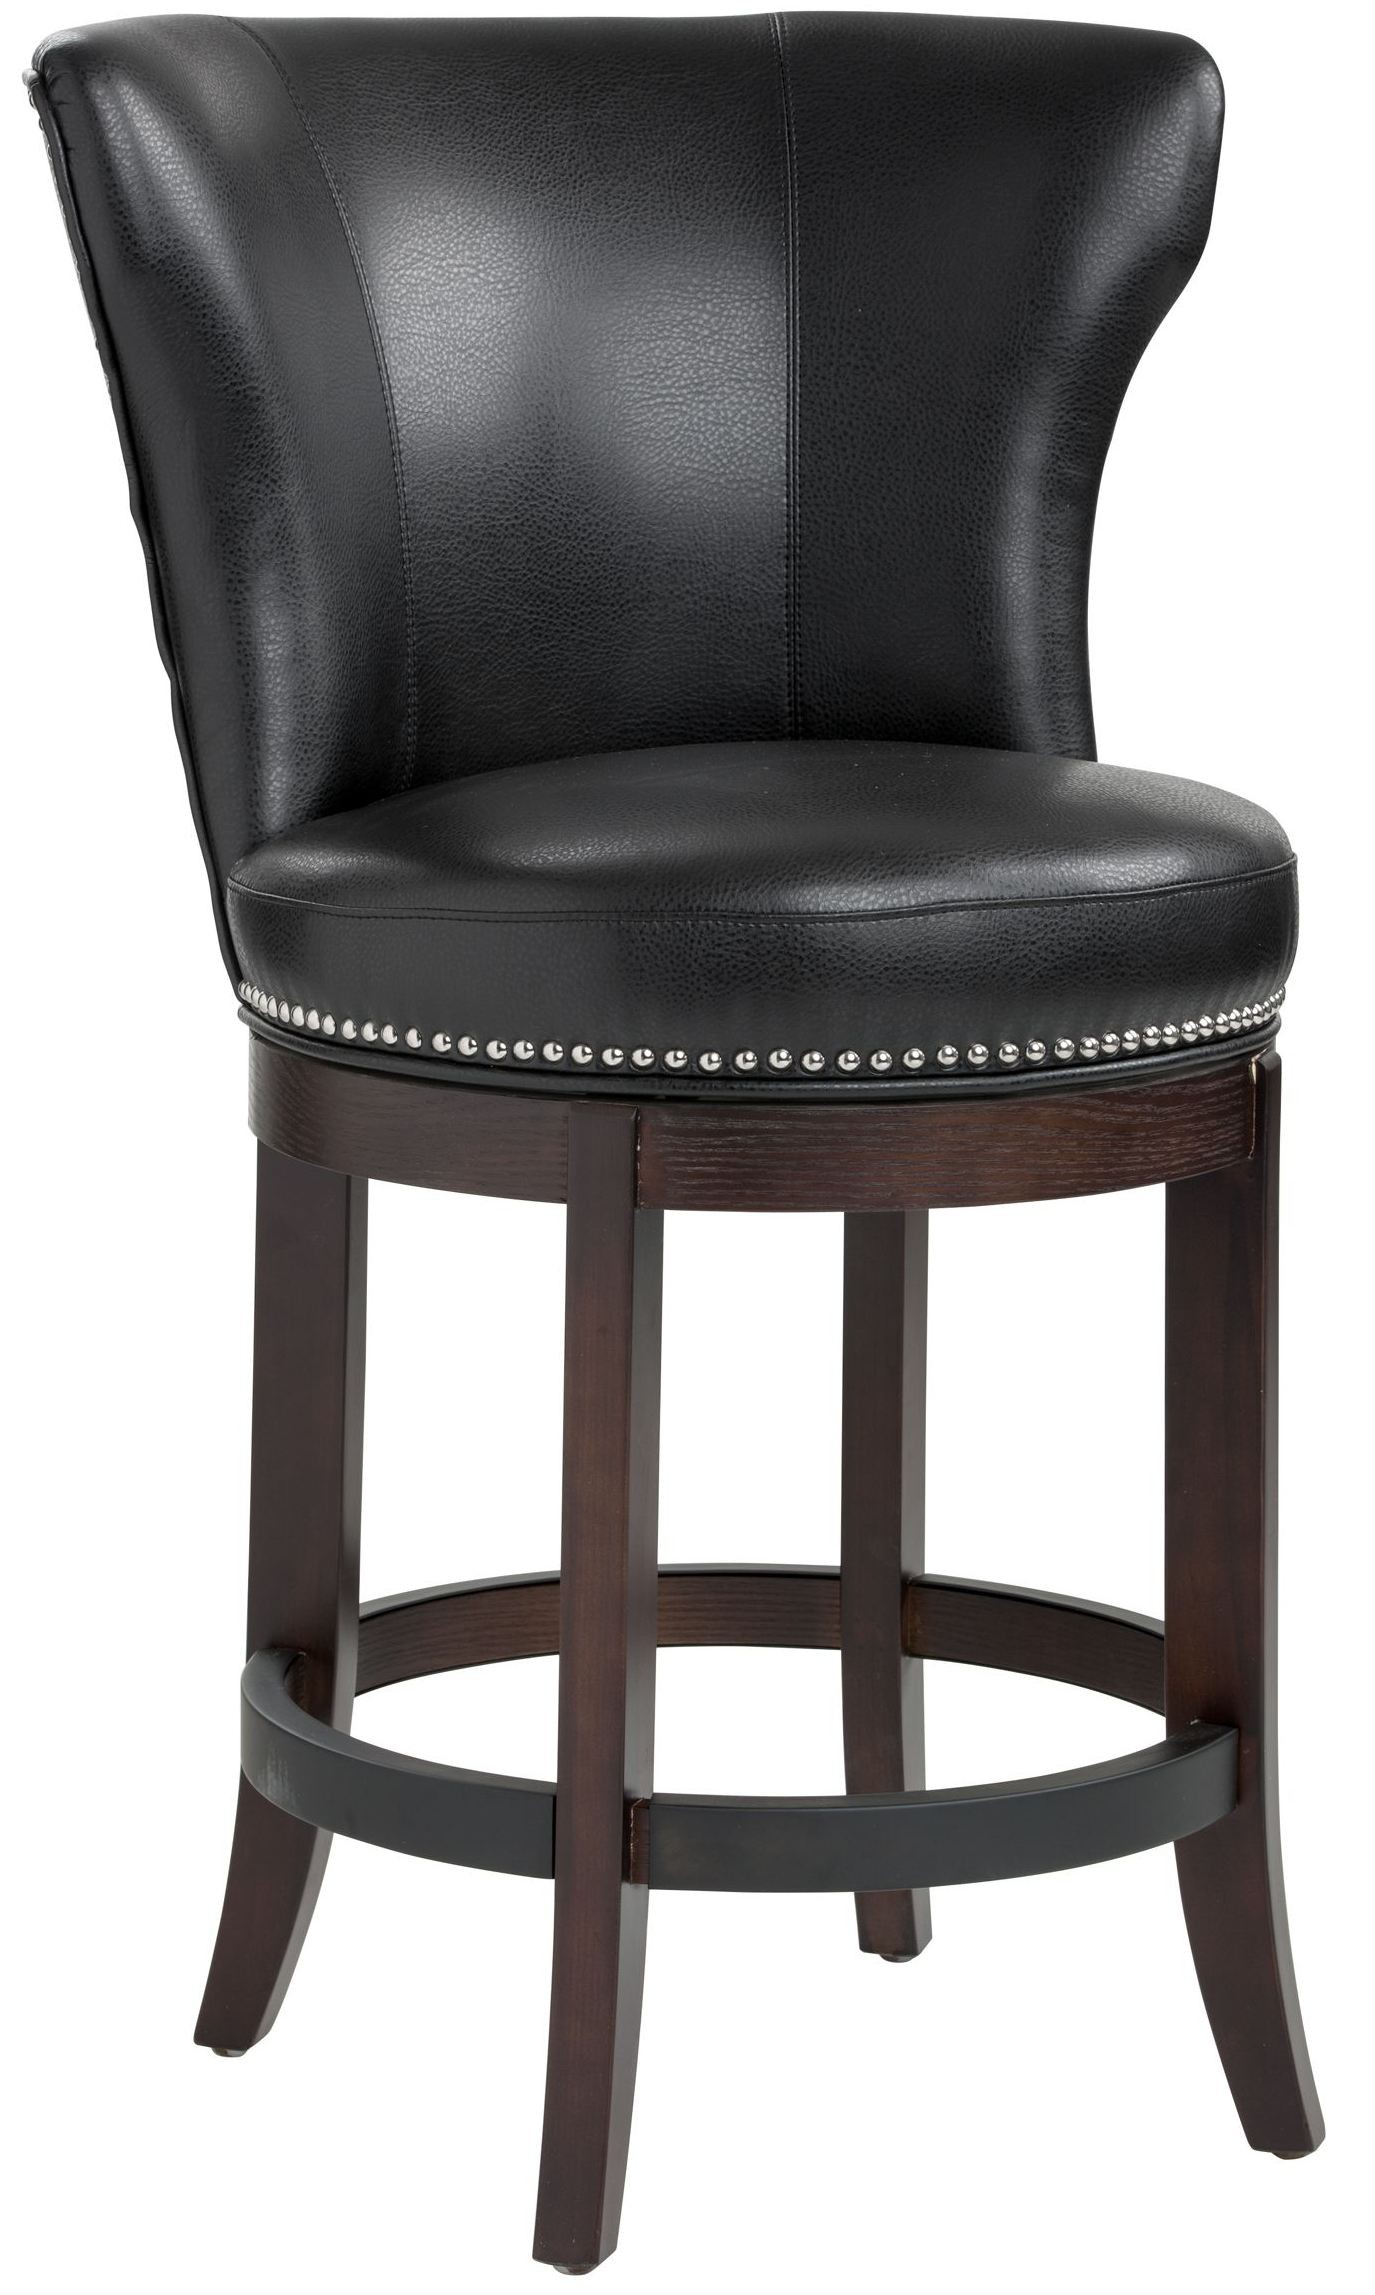 Black Bar Stool Tavern Black Leather Swivel Counter Stool